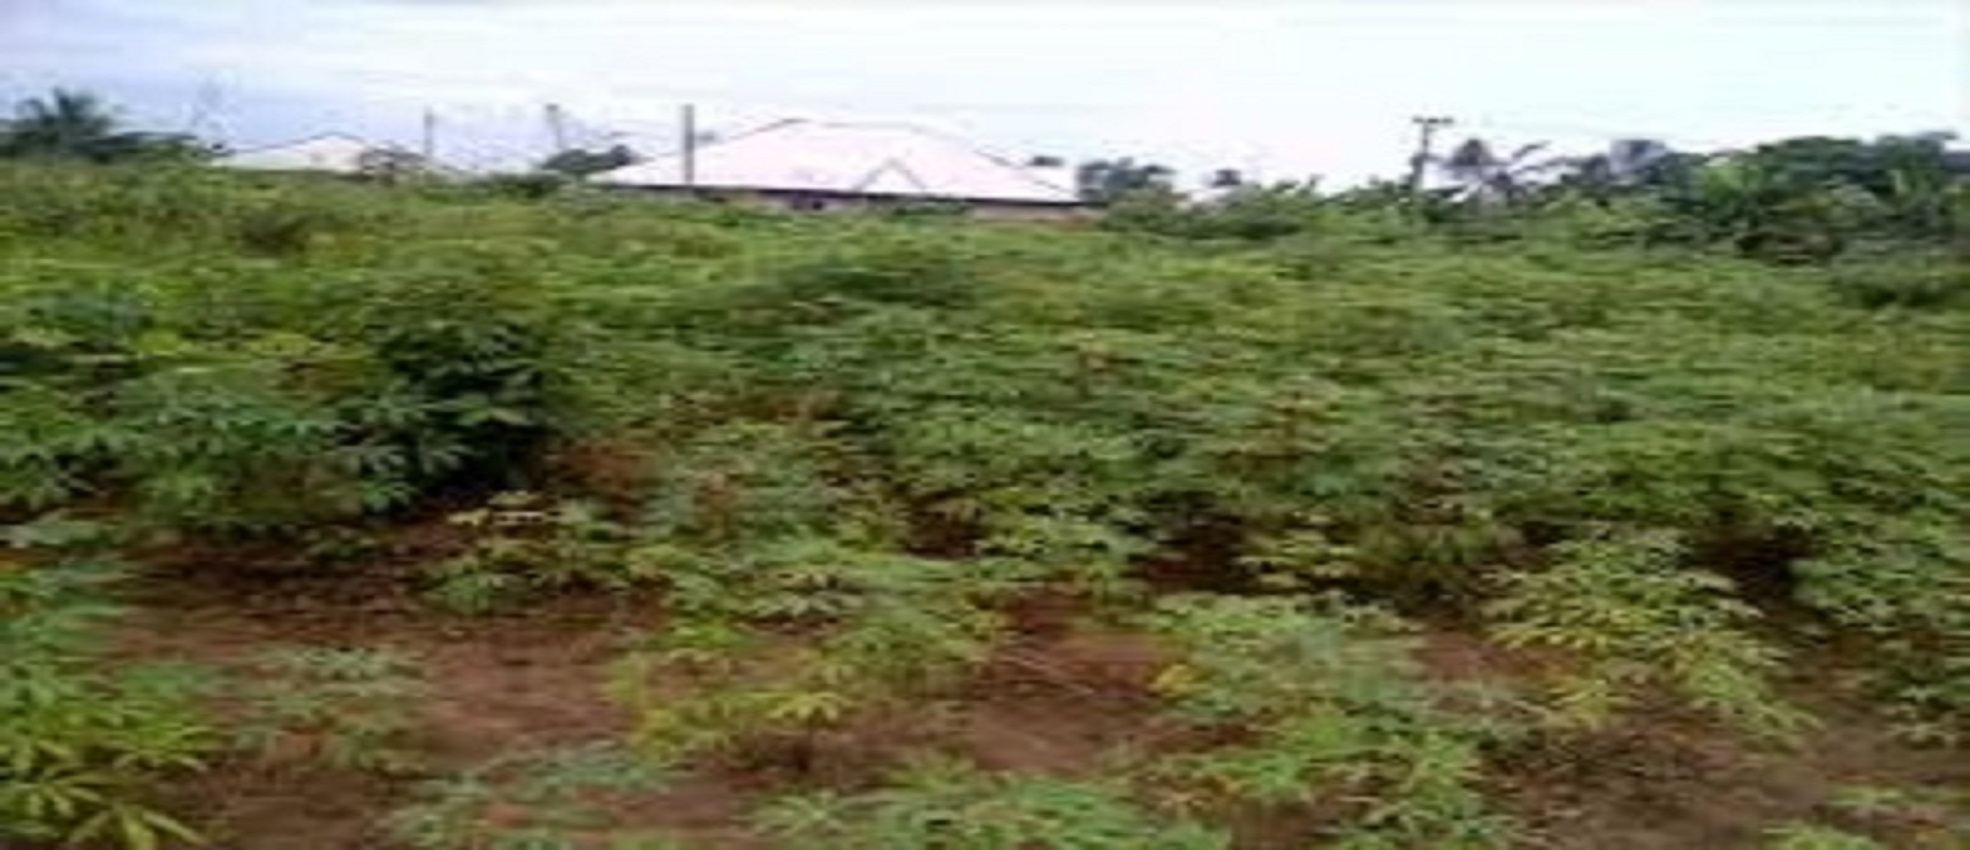 Land For Sale @ Shimawa Road Back of Deeper Life Camp